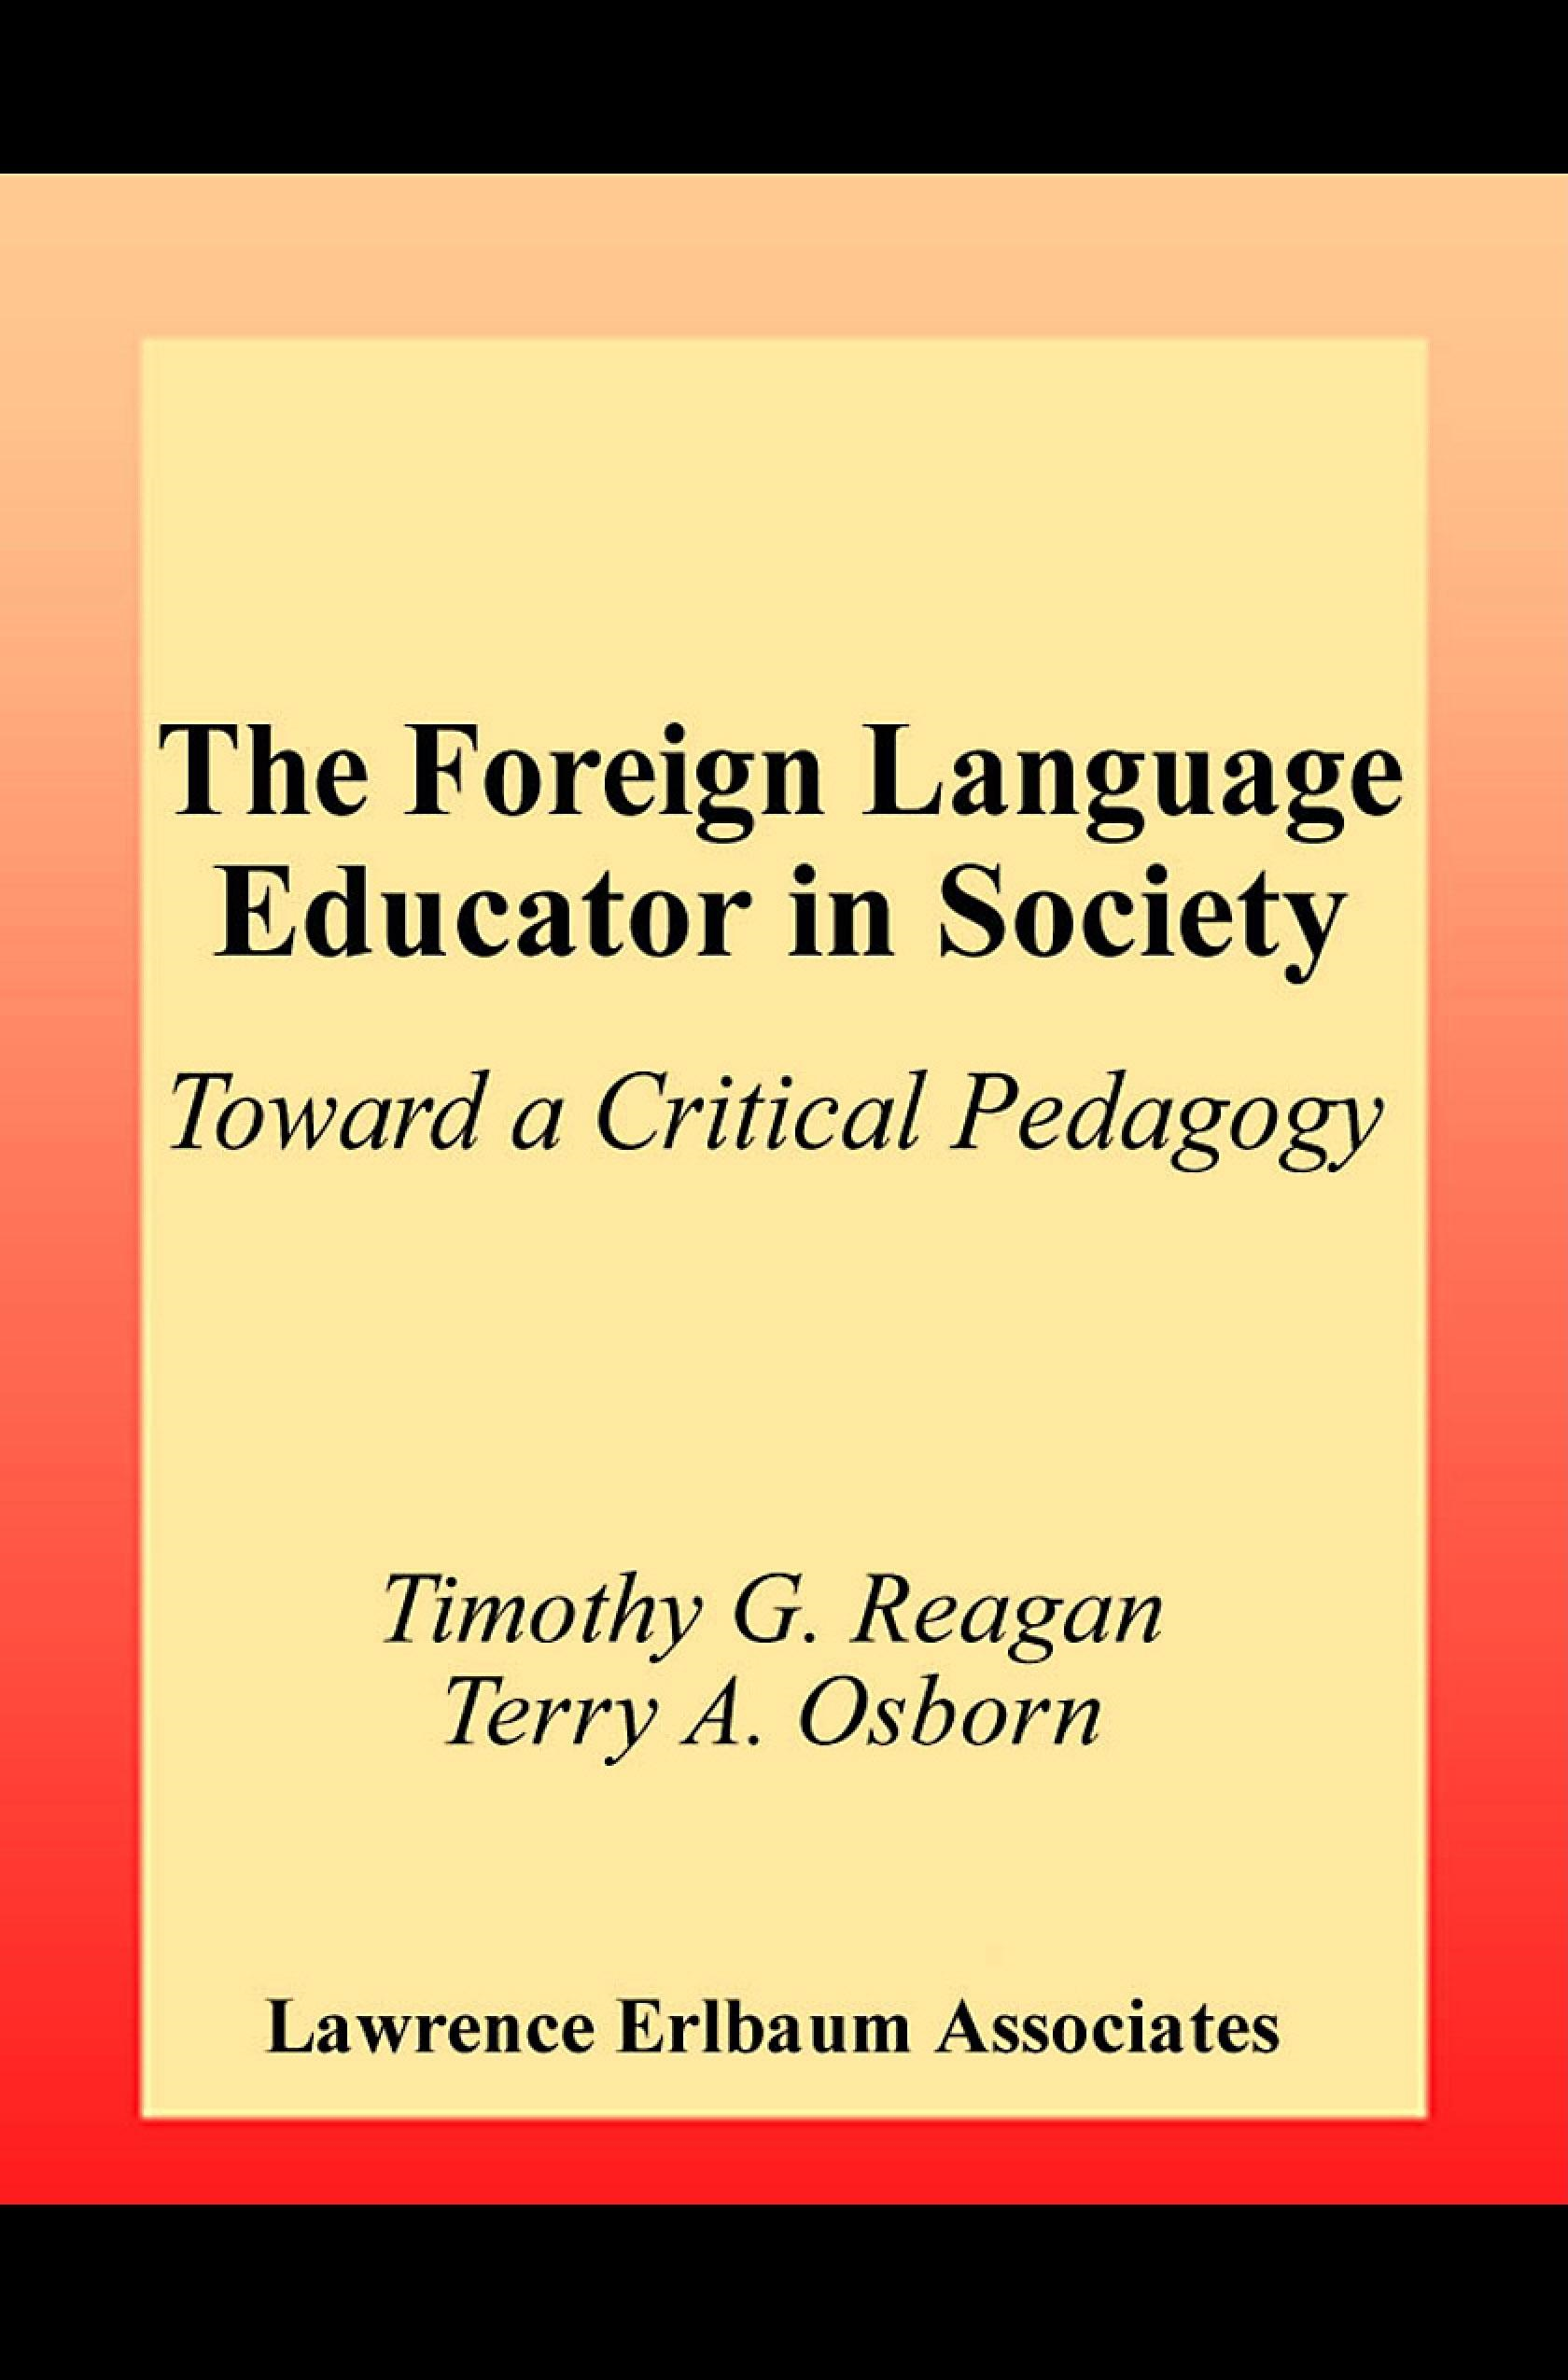 The Foreign Language Educator in Society: Toward A Critical Pedagogy